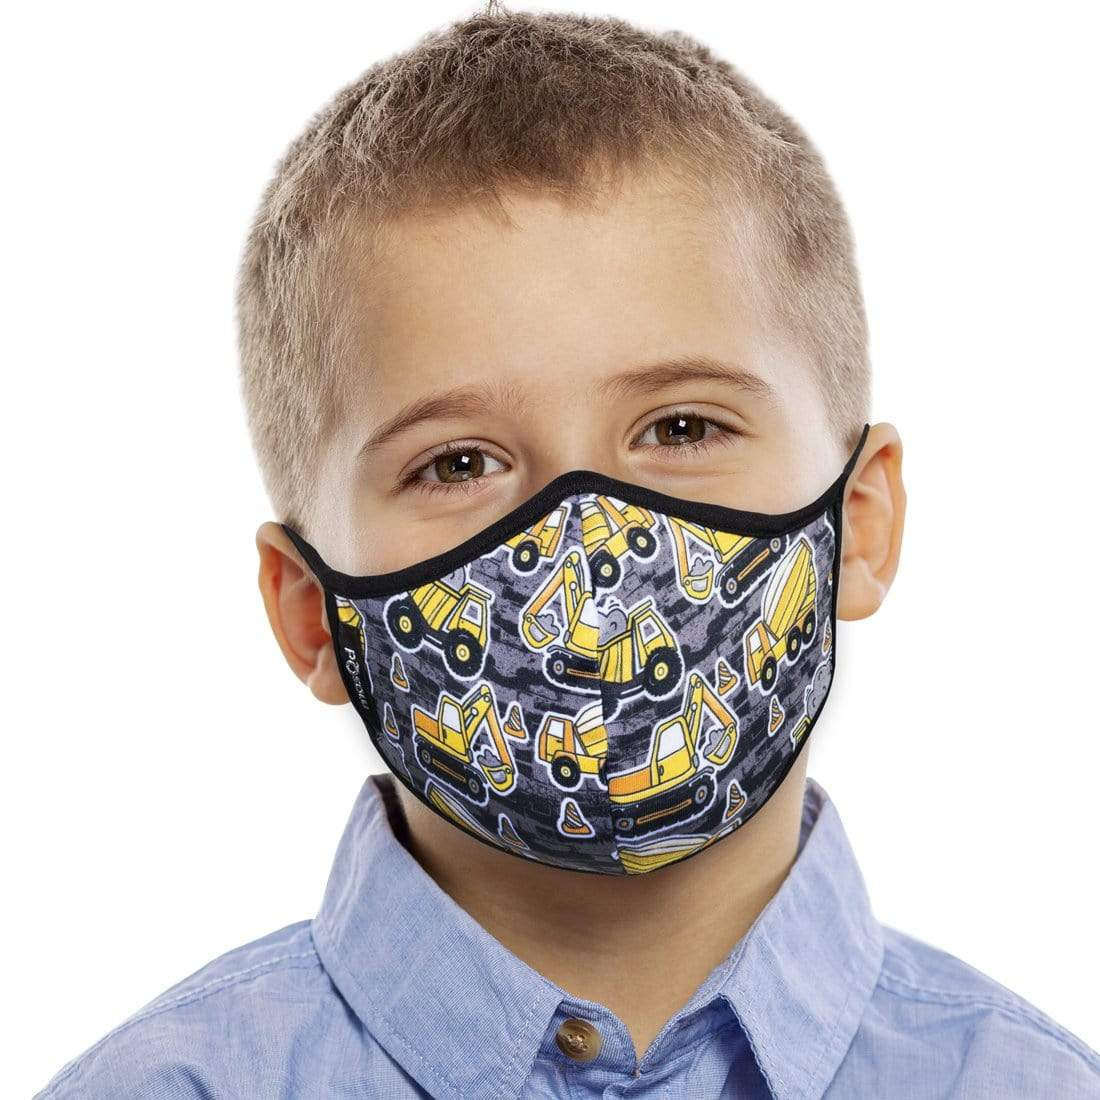 Construction Face Mask - Kids